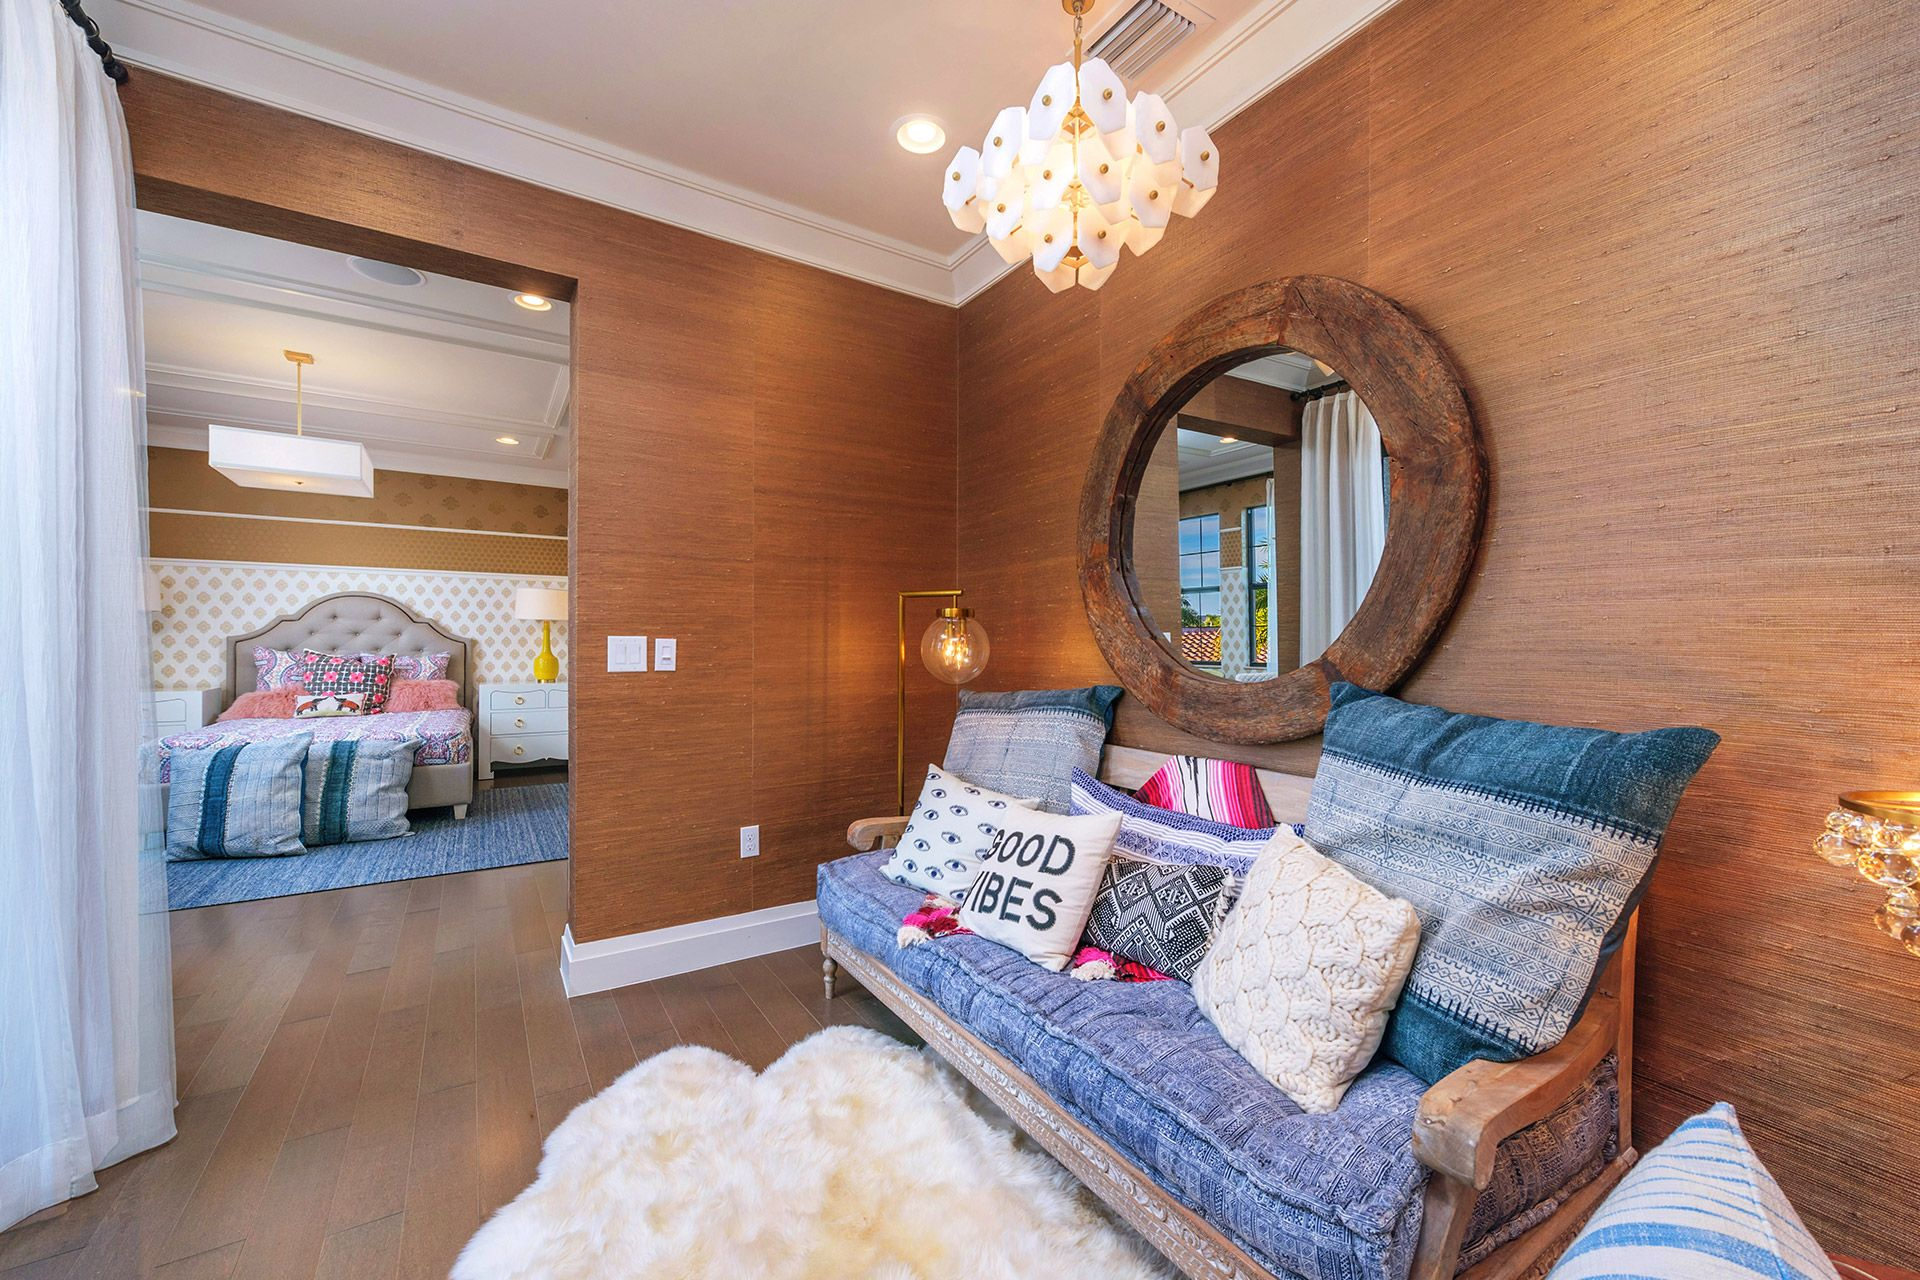 Bedroom featured in the Bassano Grande Contemporary By GL Homes in Palm Beach County, FL